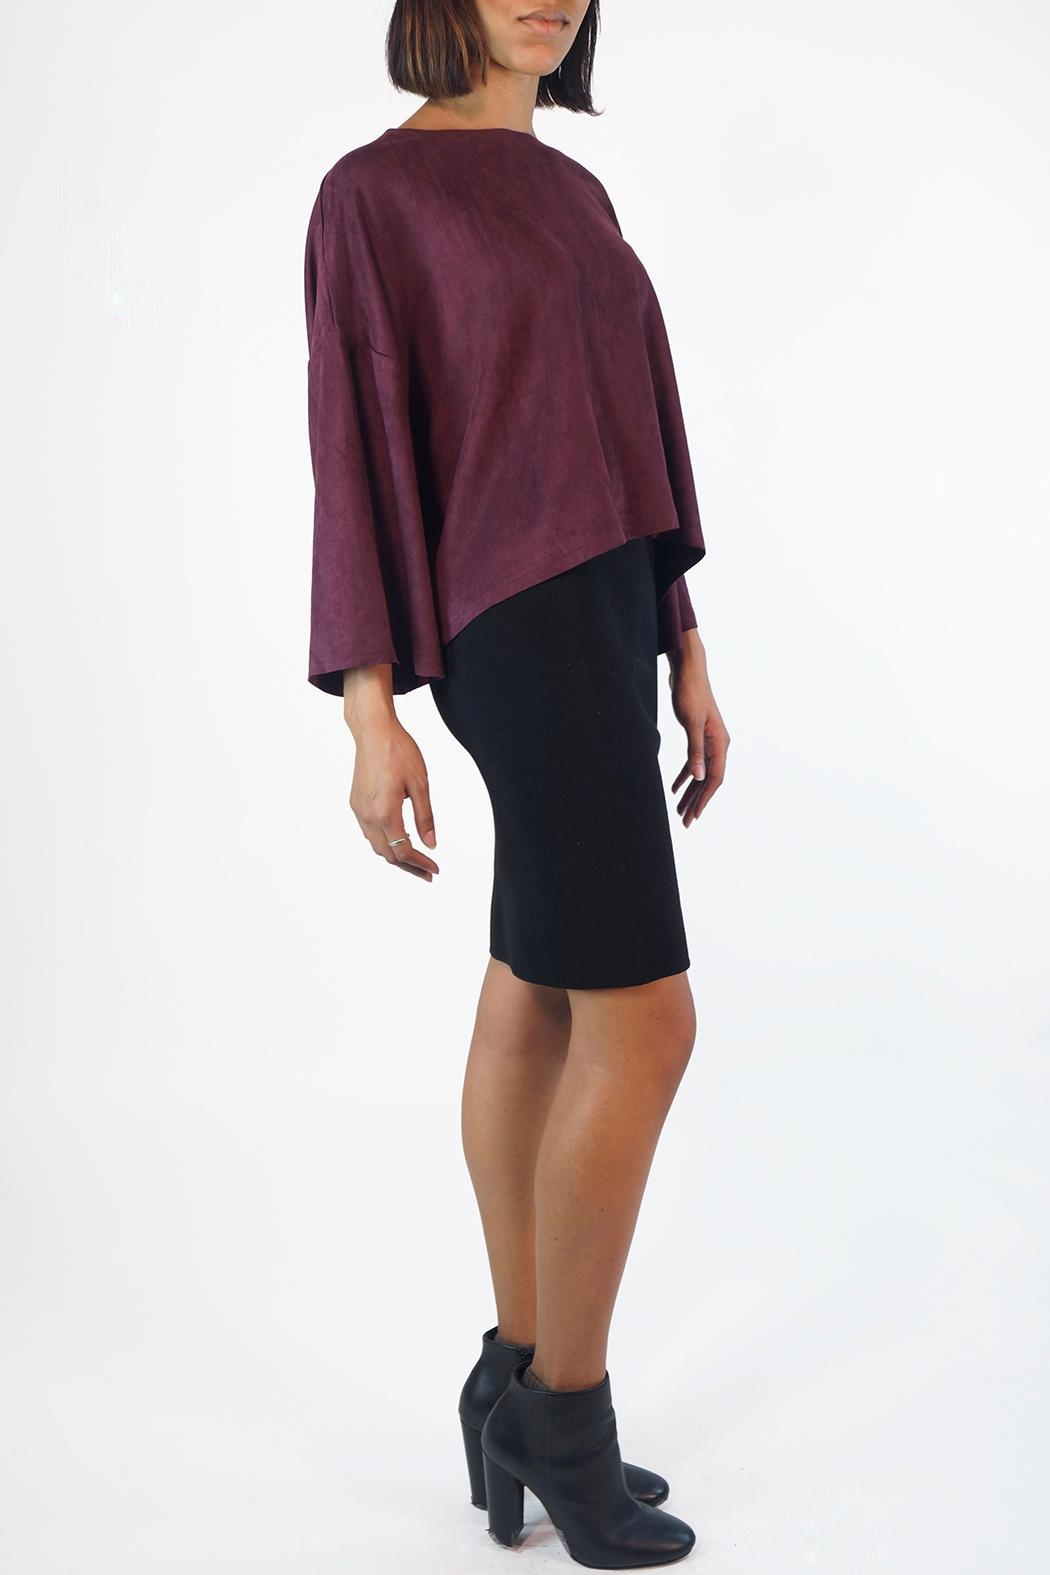 NU New York Taffy Suedette Top - Front Full Image